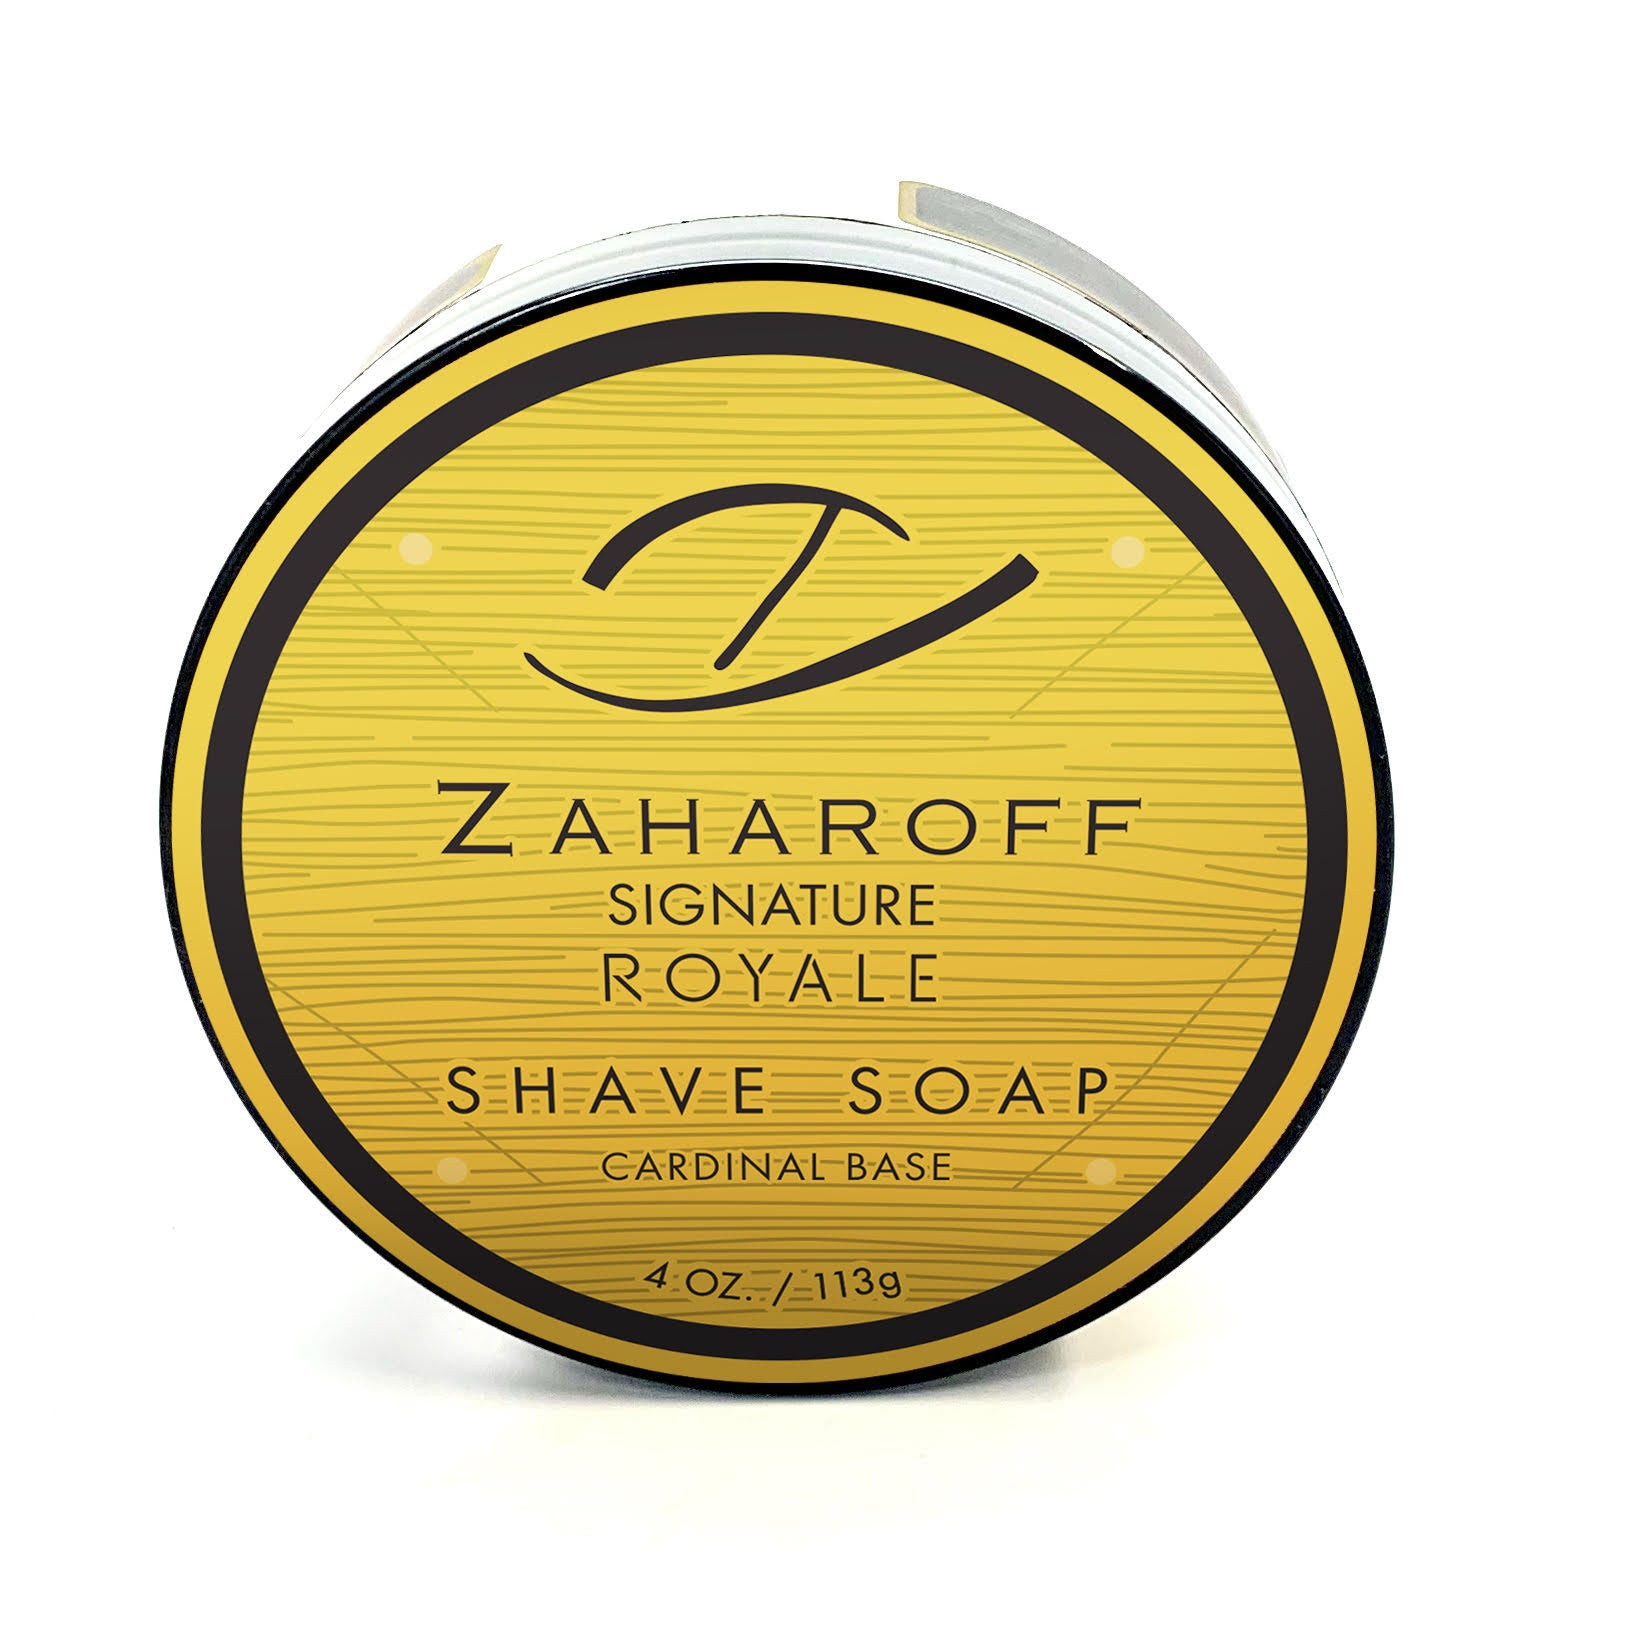 Zaharoff Signature ROYALE Shave Set